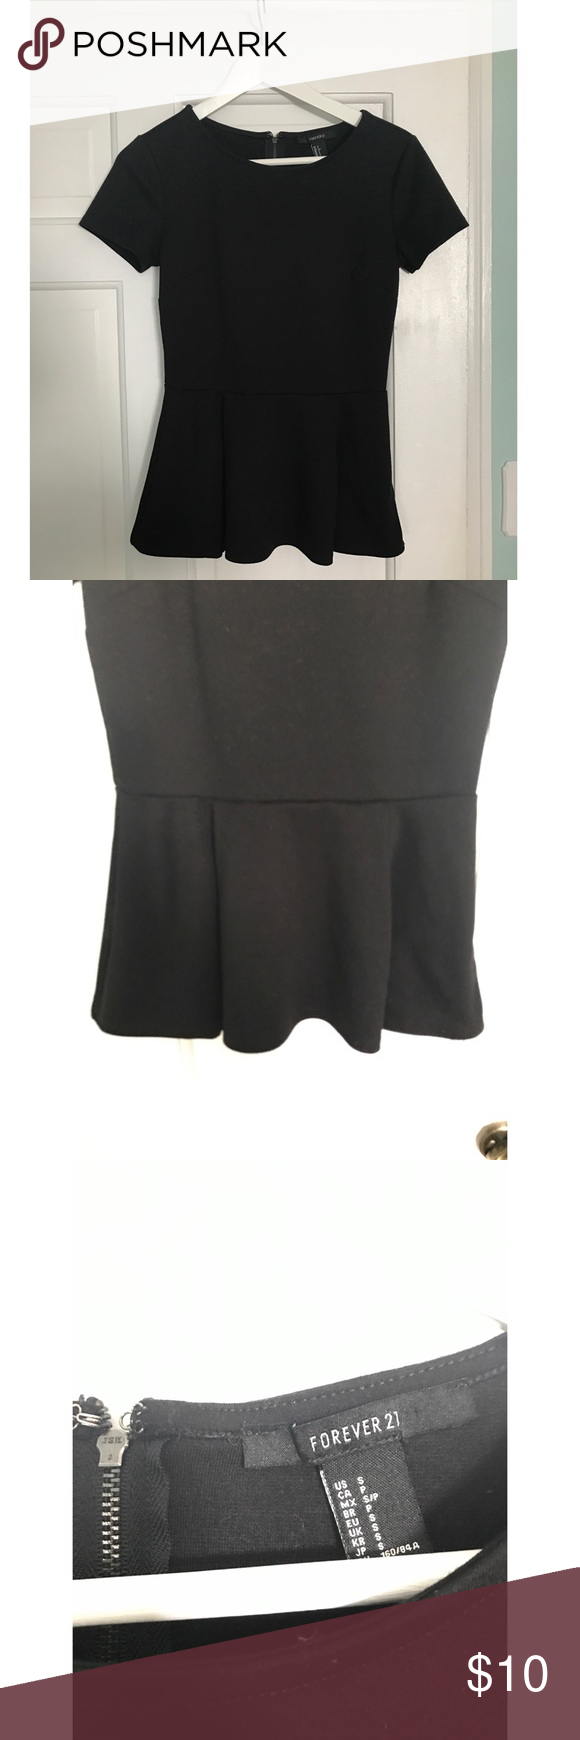 Forever 21 Peplum Top This is a black peplum top from forever21 with a zipper on the back to cinch you in as per the third photo. Forever 21 Tops Blouses